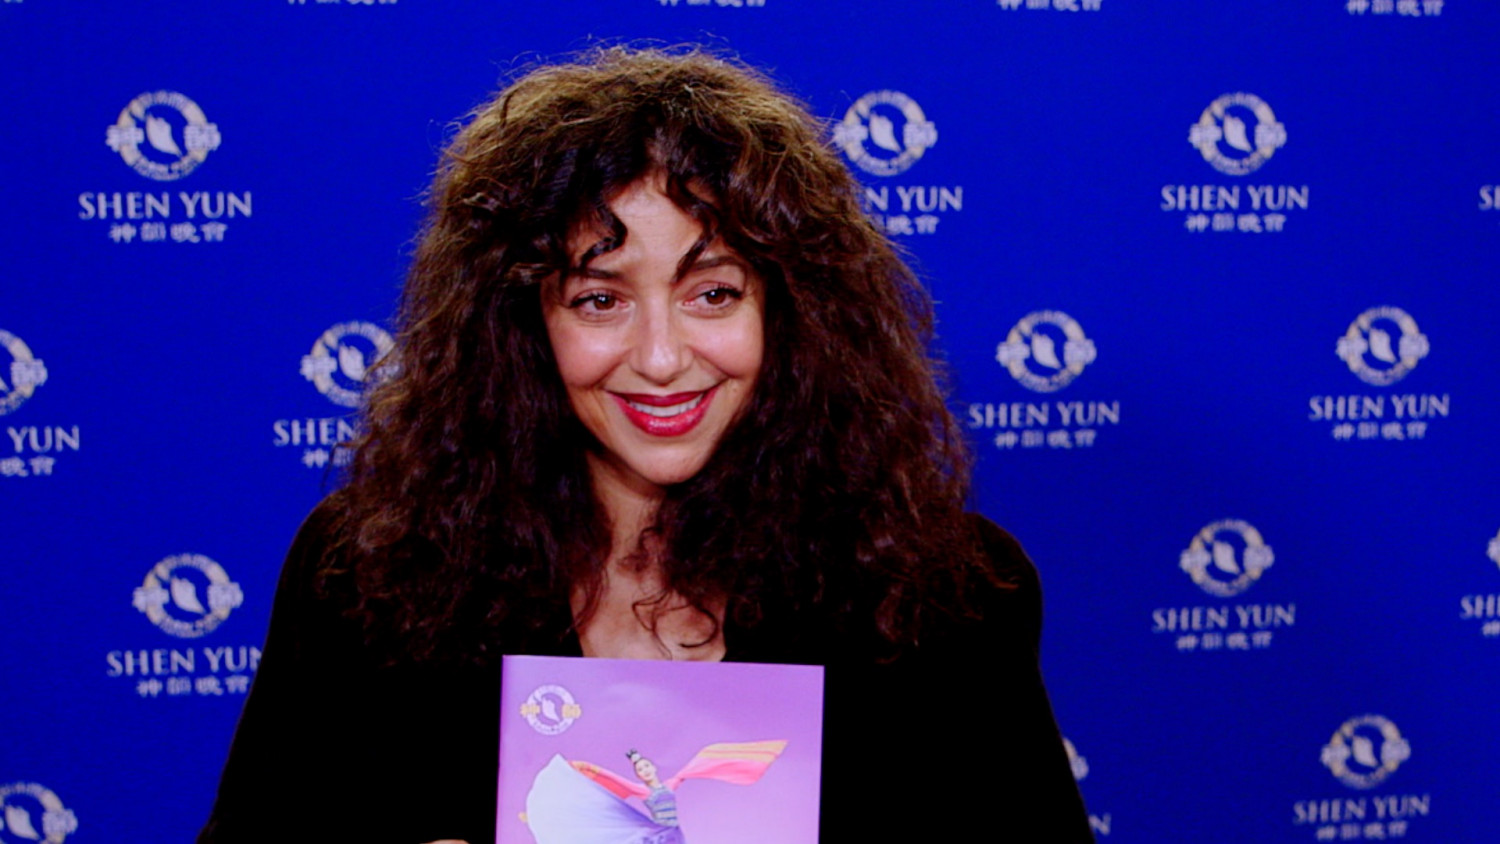 Canadian Artists Mesmerize by Shen Yun's Perfection